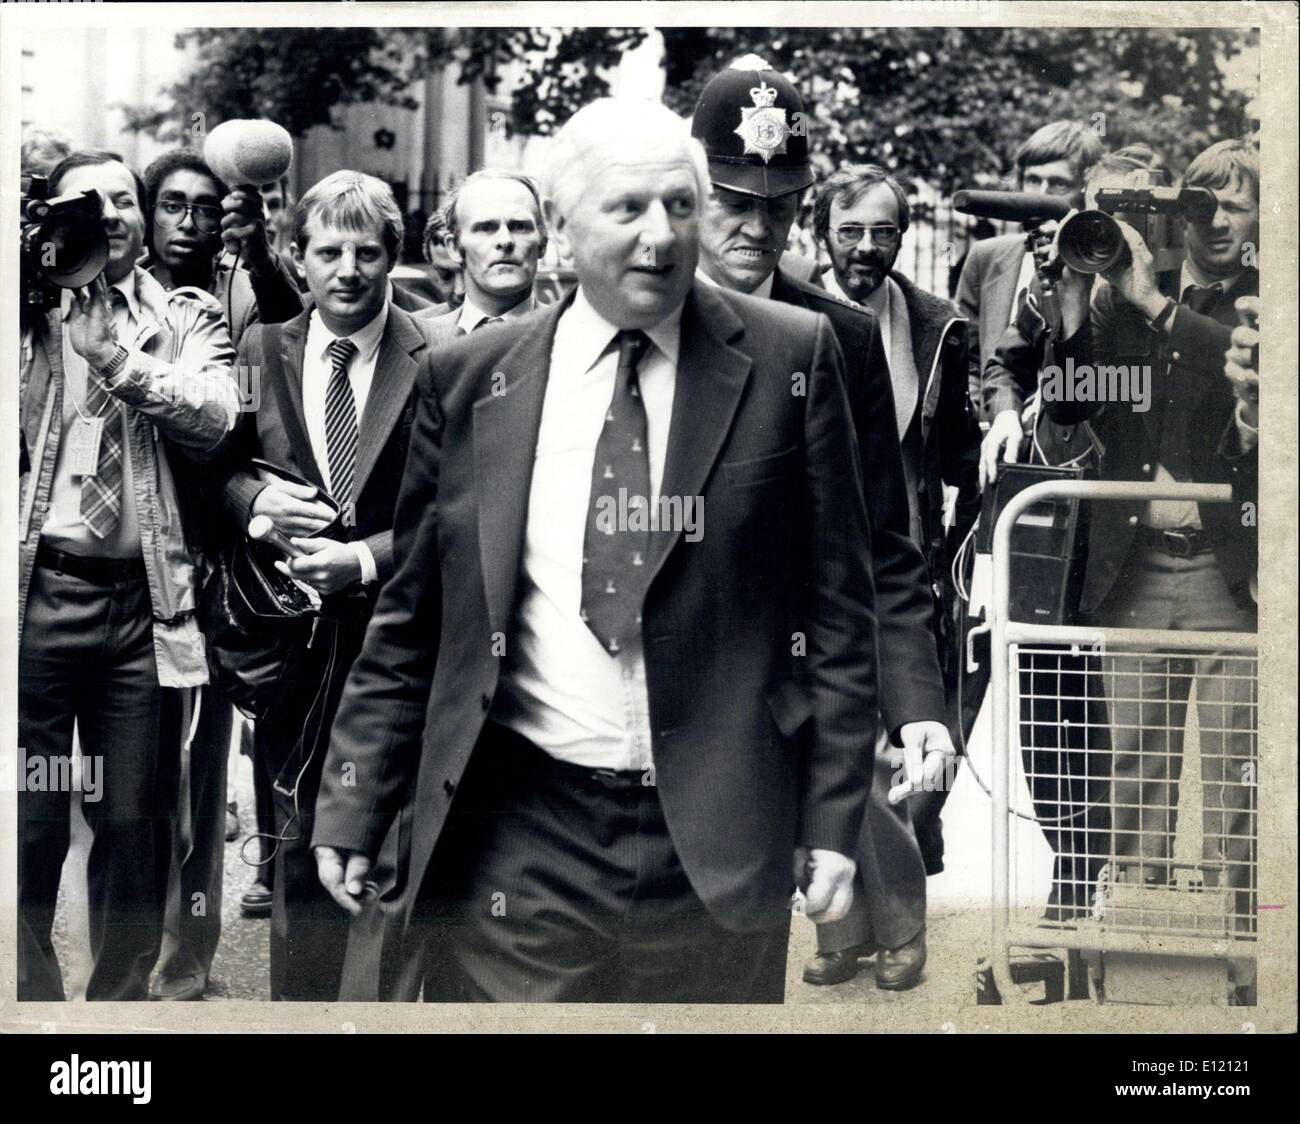 Sep. 14, 1981 - Mrs. Thatcher Shuffles her Cabinet: Employment Secretary James Prior, leading moderate in the cabinet has been the key figure in Mrs. Thatcher plans for major changes in her government. It is expected that the new cabinet will be announced today, their first meeting will be tomorrow. Photo Shows James Prior surrounded by journalists leaving No 10 after meeting the Prime Minister. - Stock Image